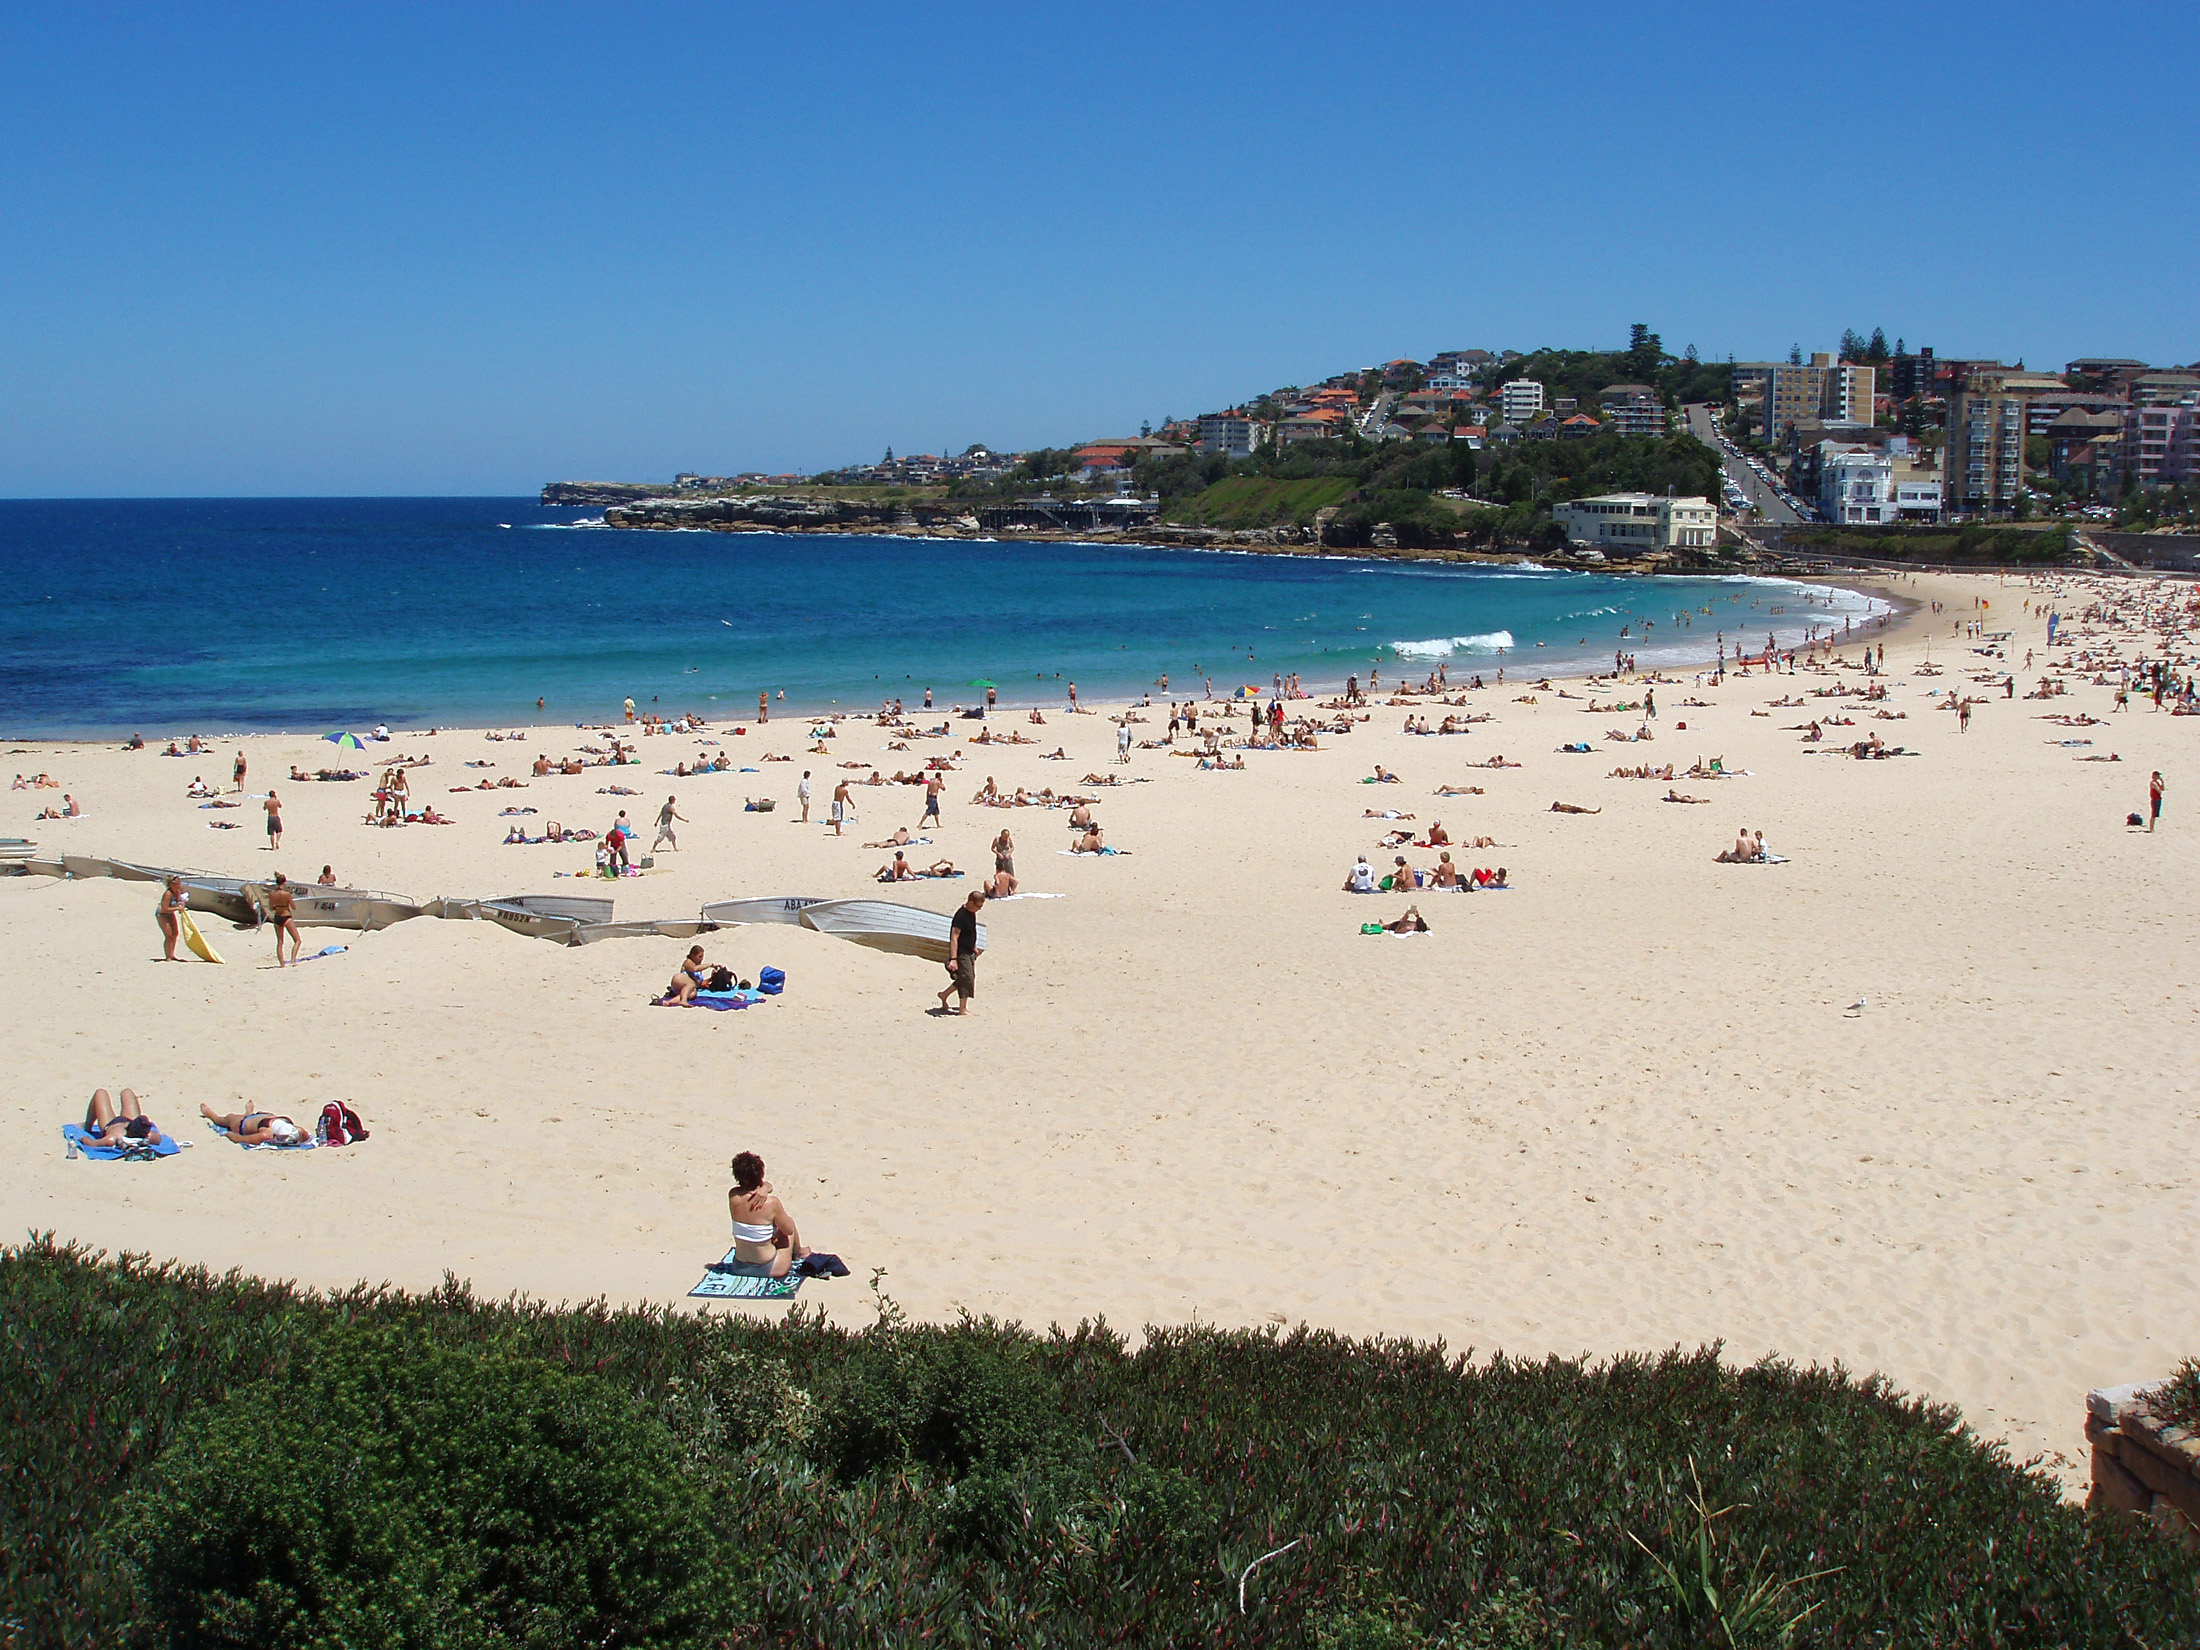 Tourists During Holiday at Famous Coogee Beach with Turquoise Sea Water Located in Australia. Captured in Panorama View.